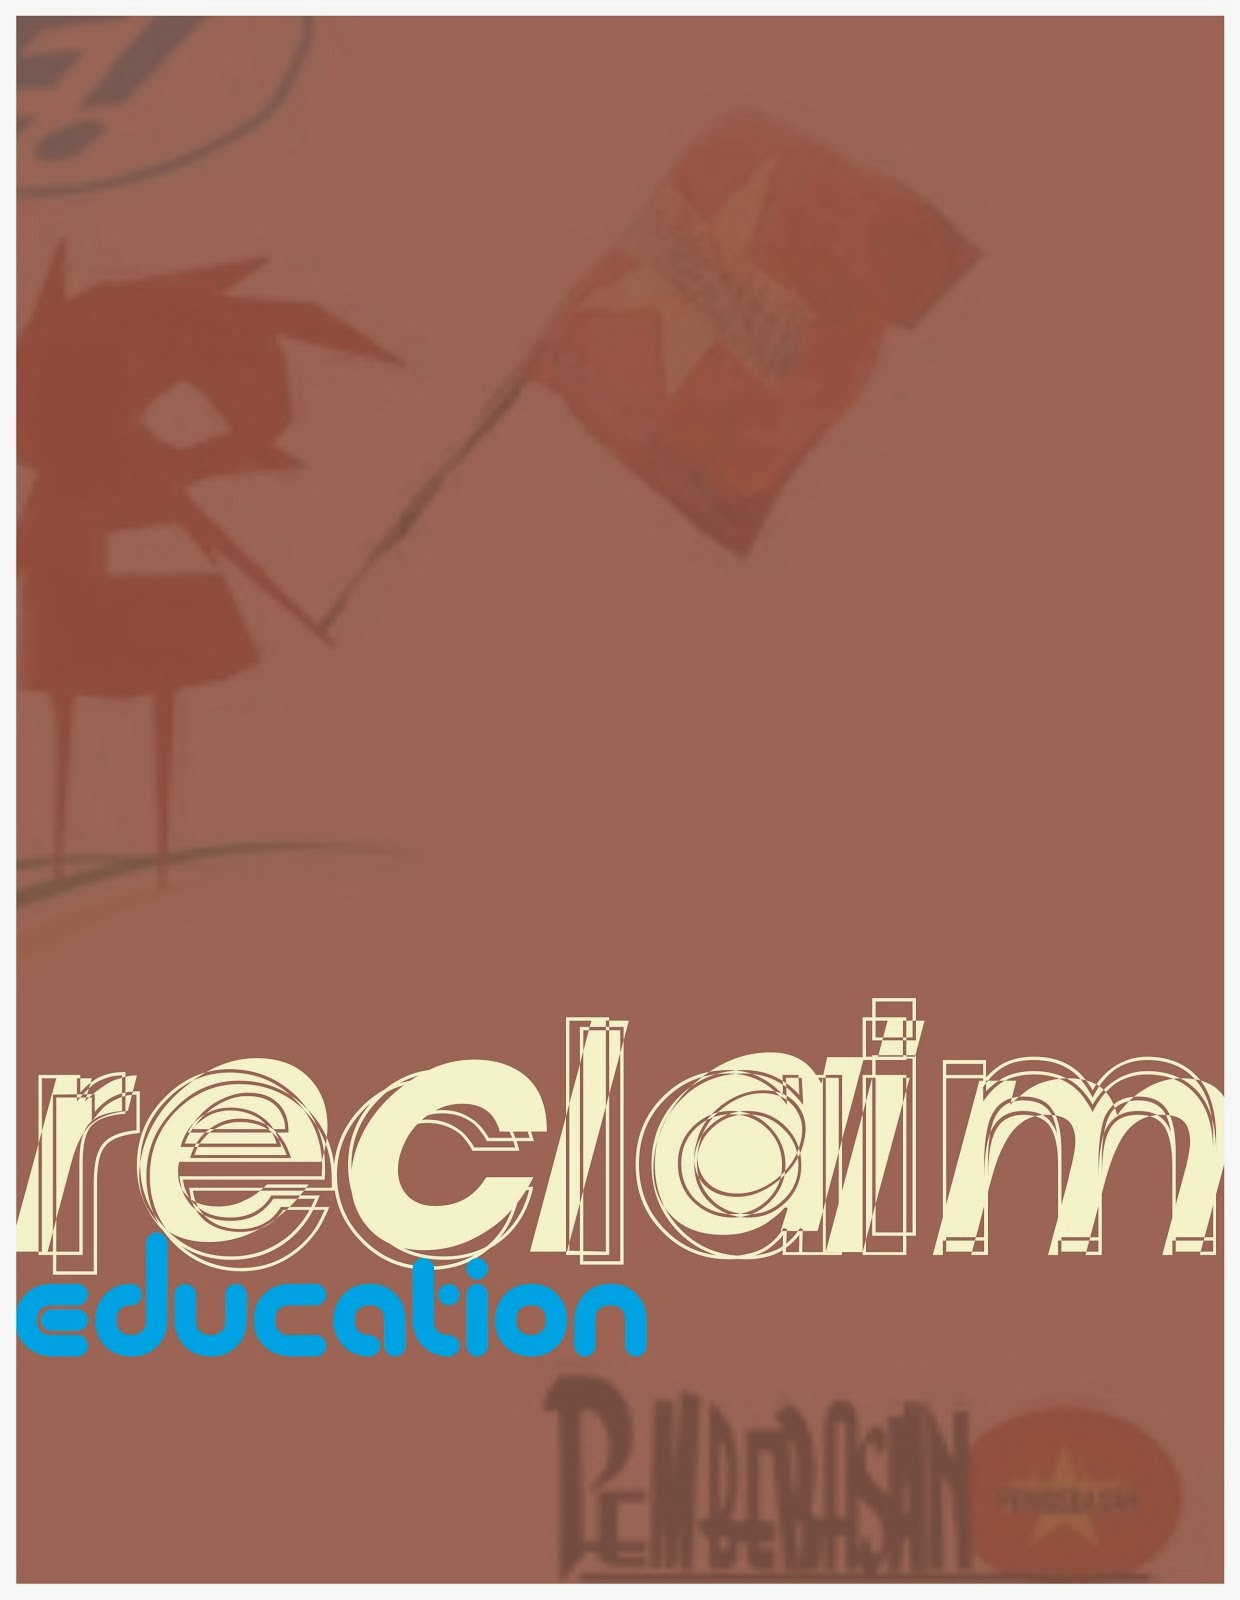 Reclaim Education!